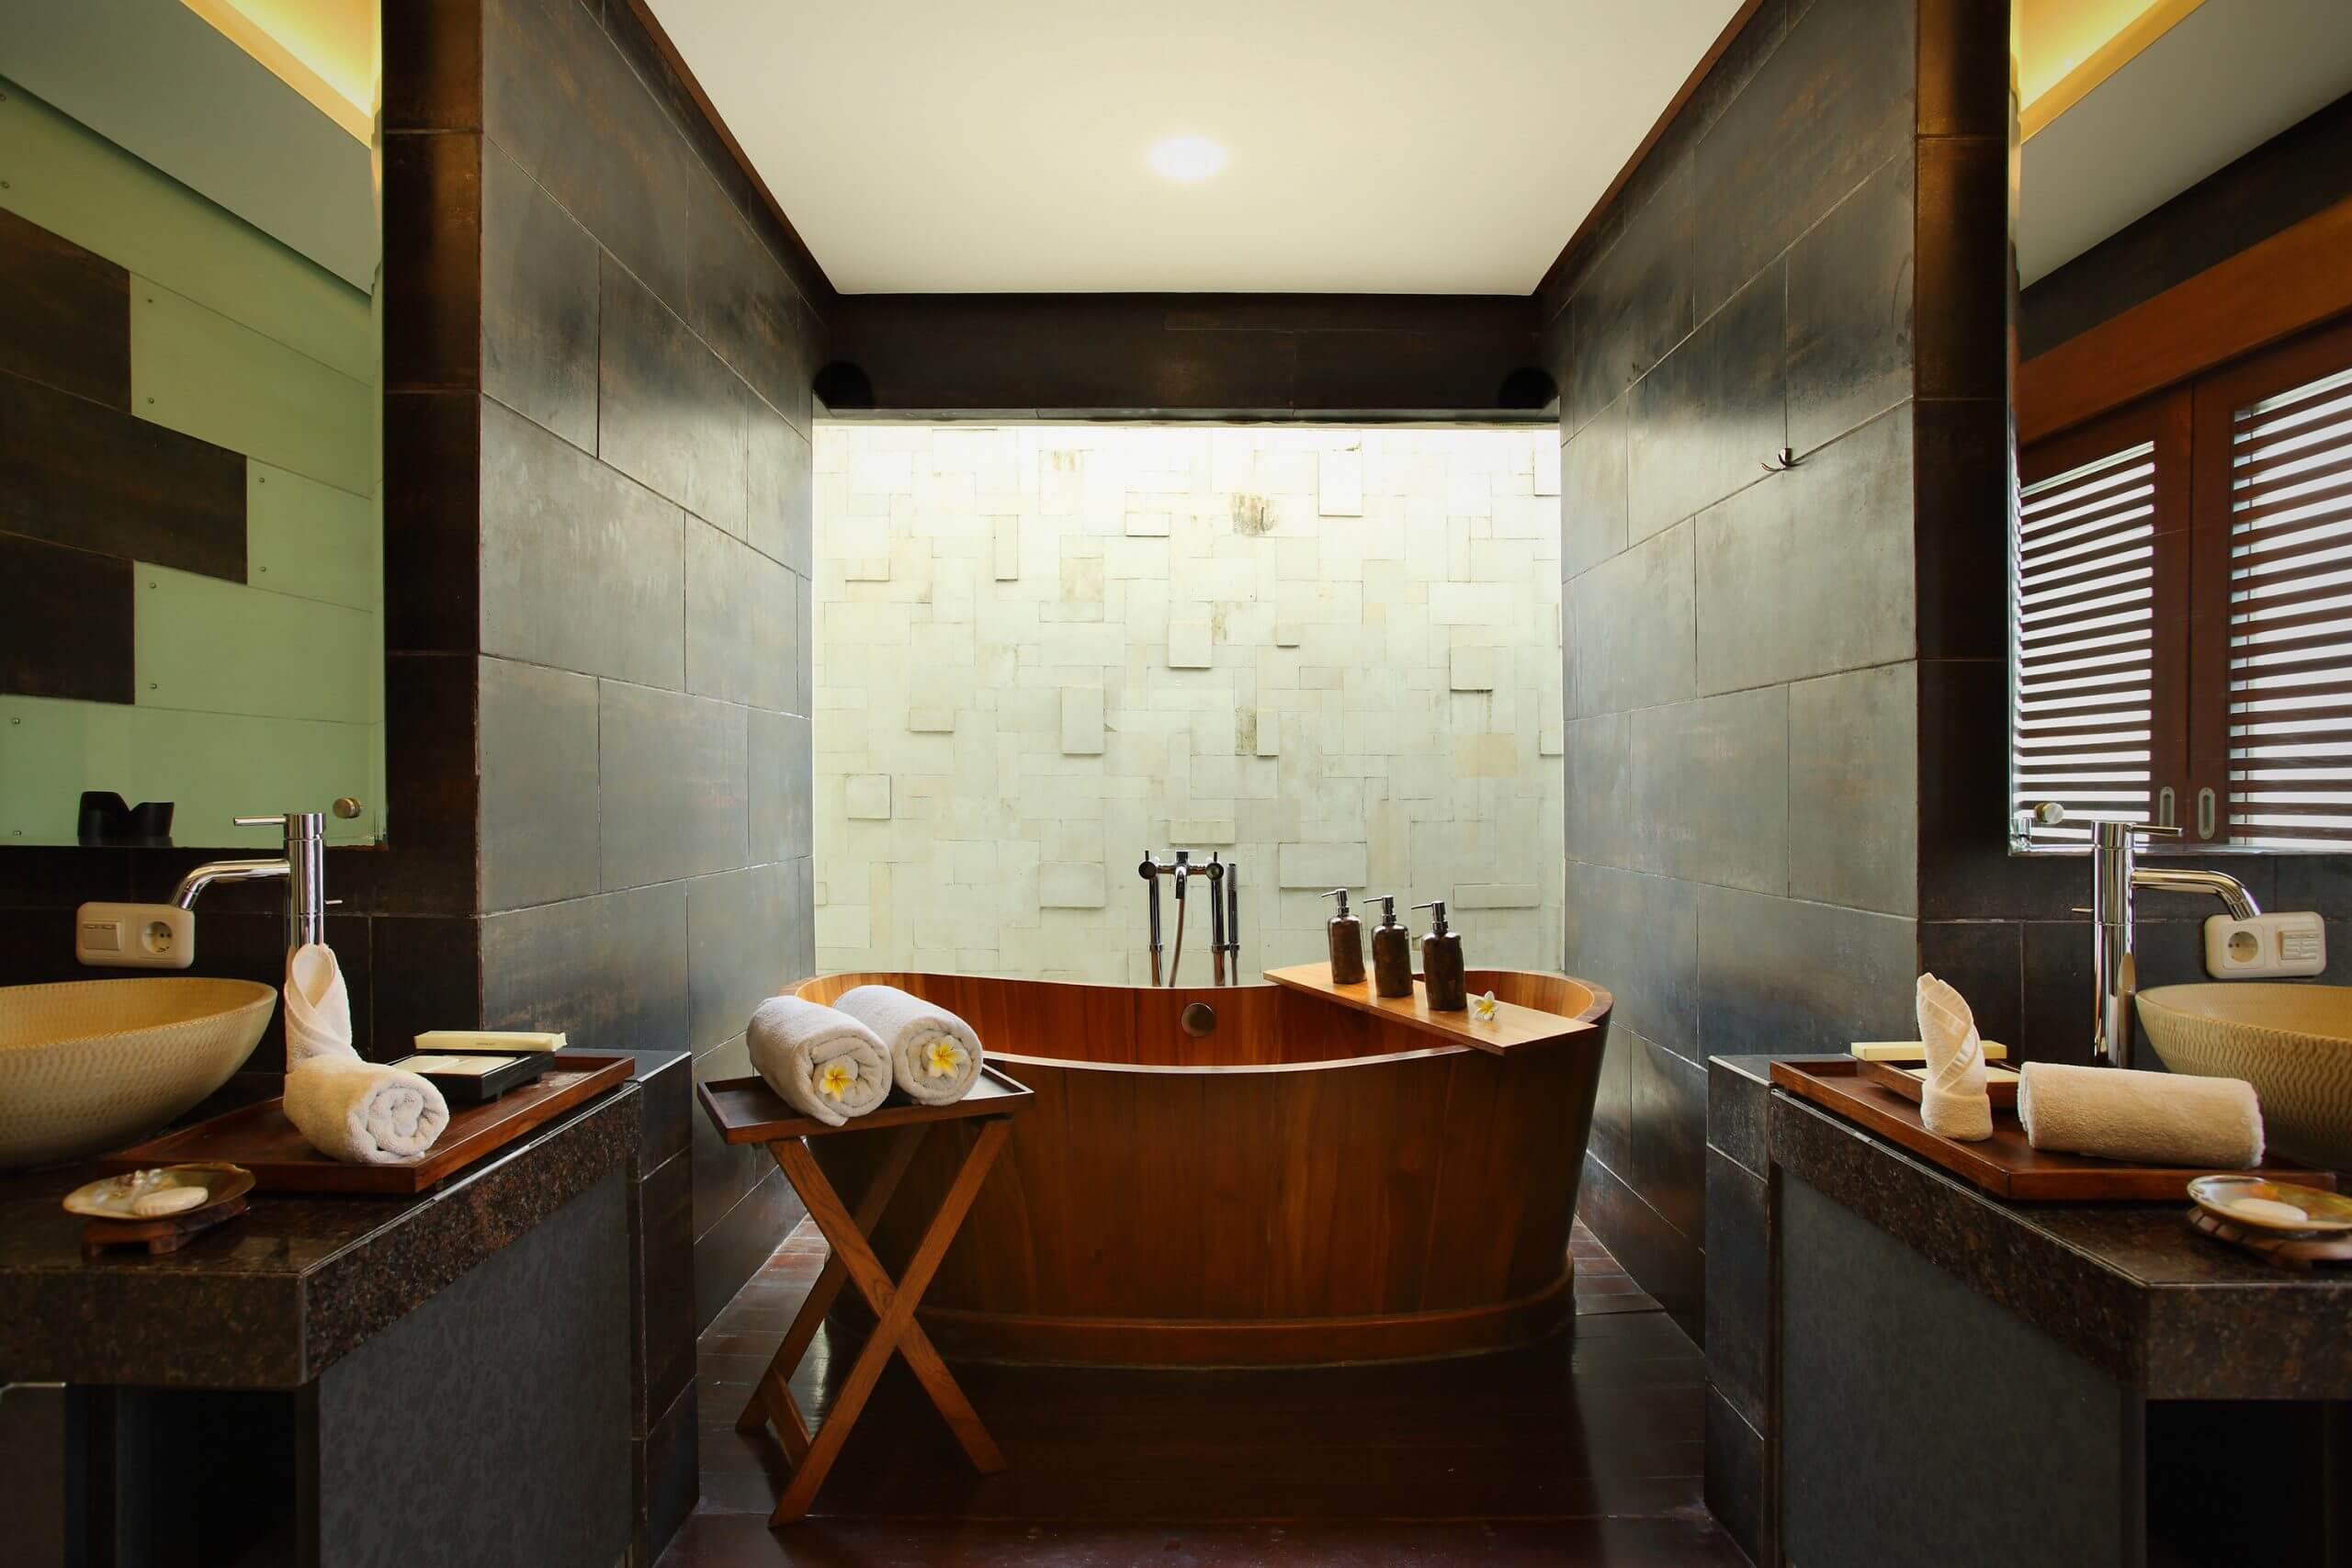 luxury bathtub villa canggu